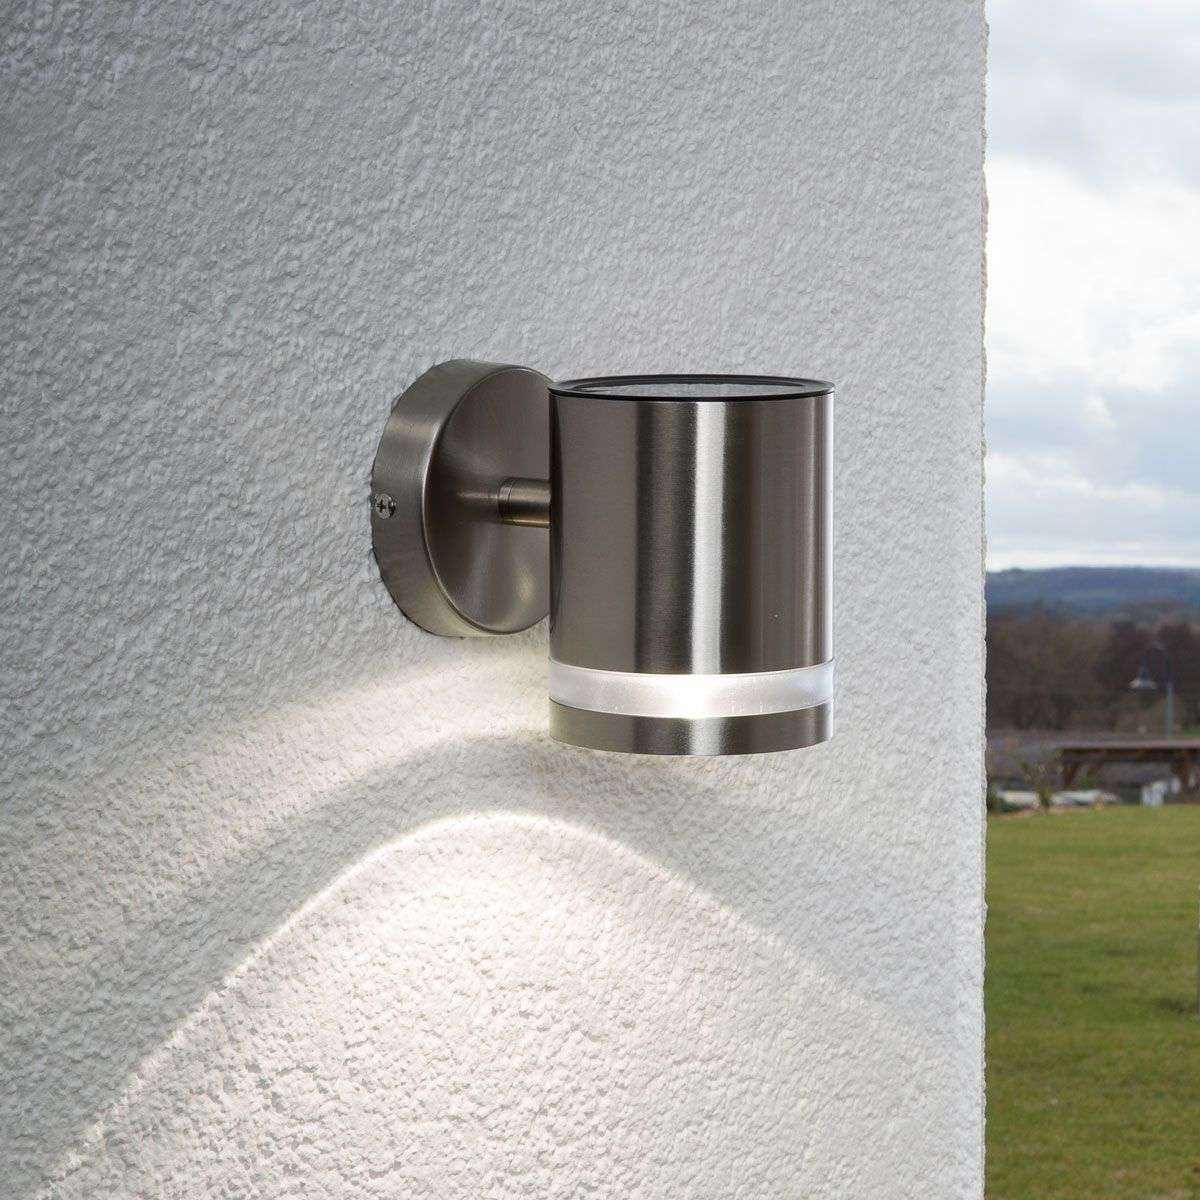 Salma solar wall light with LED | Lights.co.uk